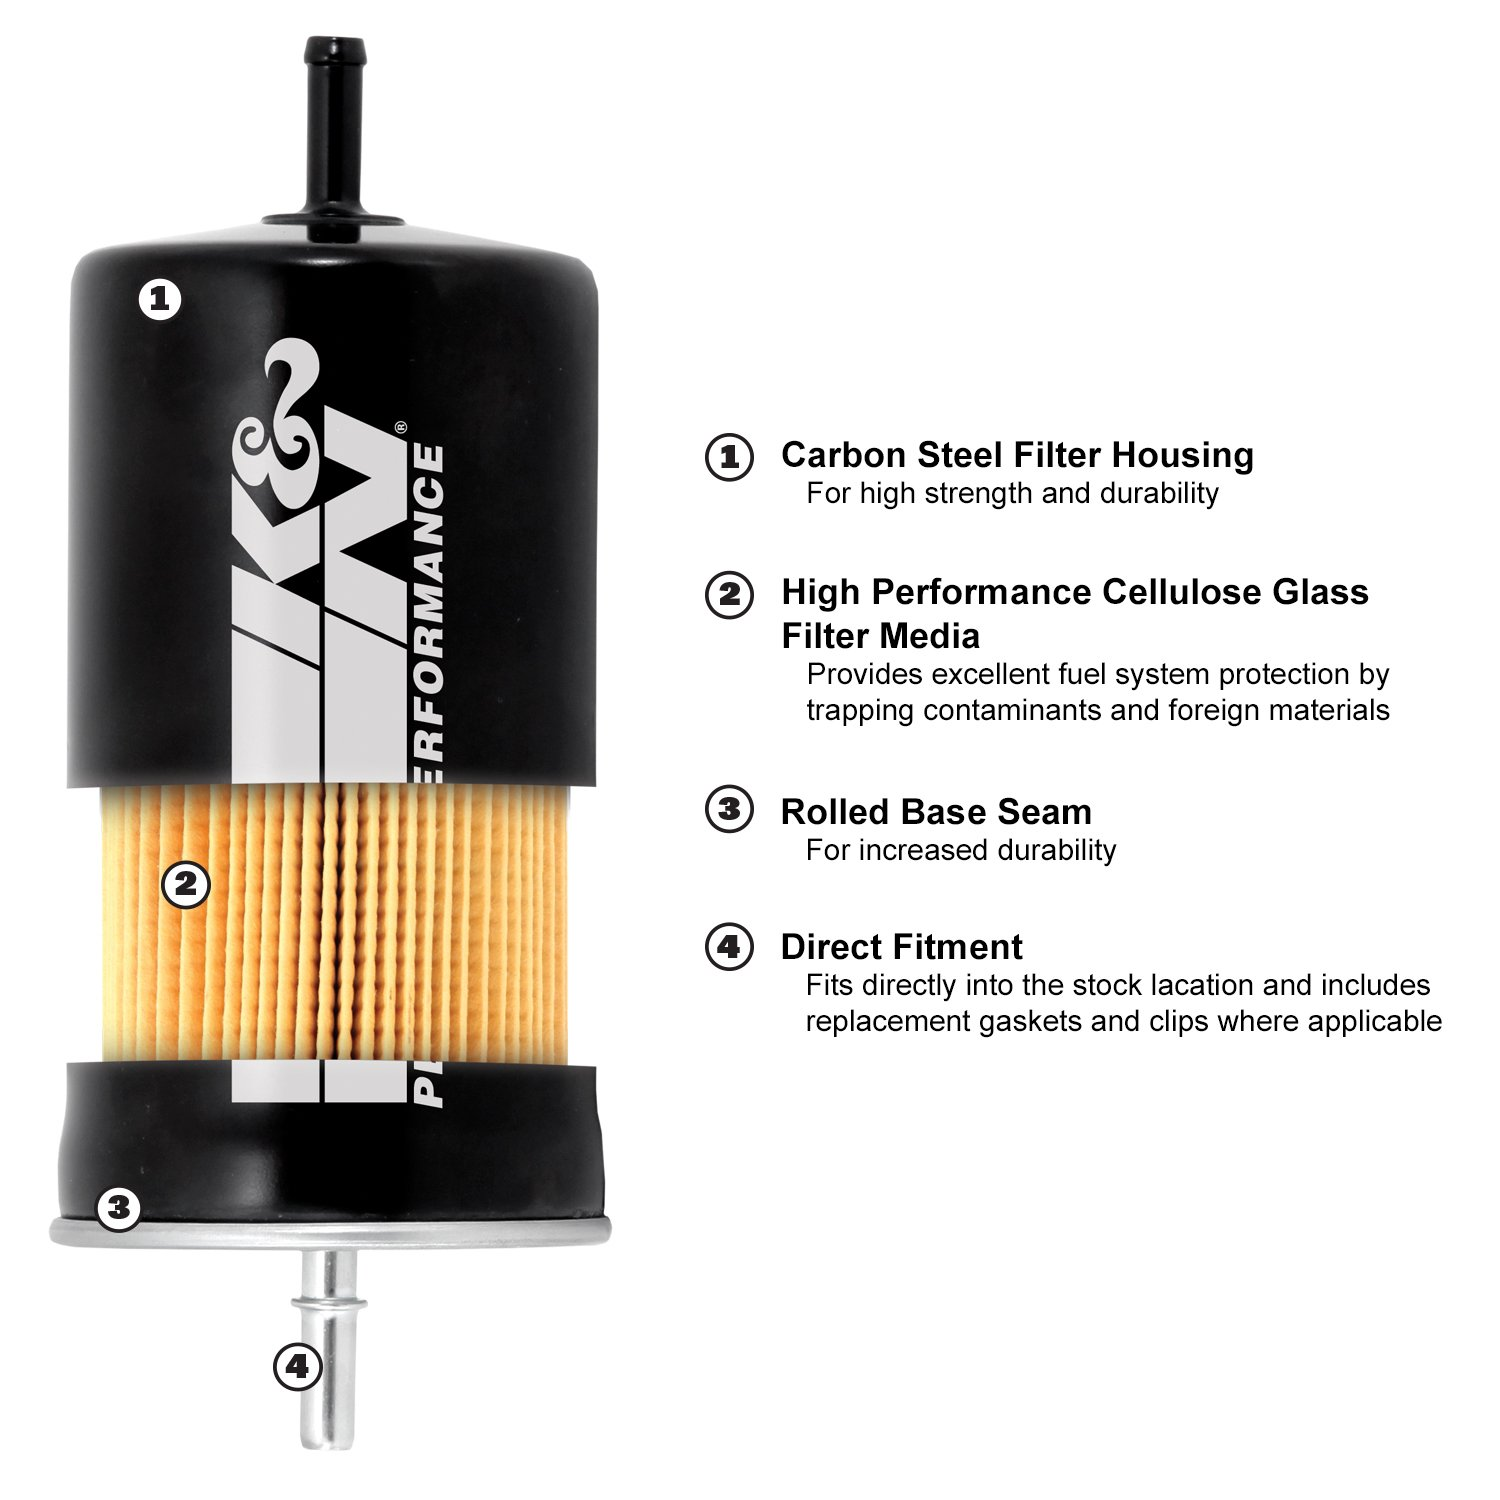 Kn Pf 1000 Fuel Filter Automotive 2010 Tahoe